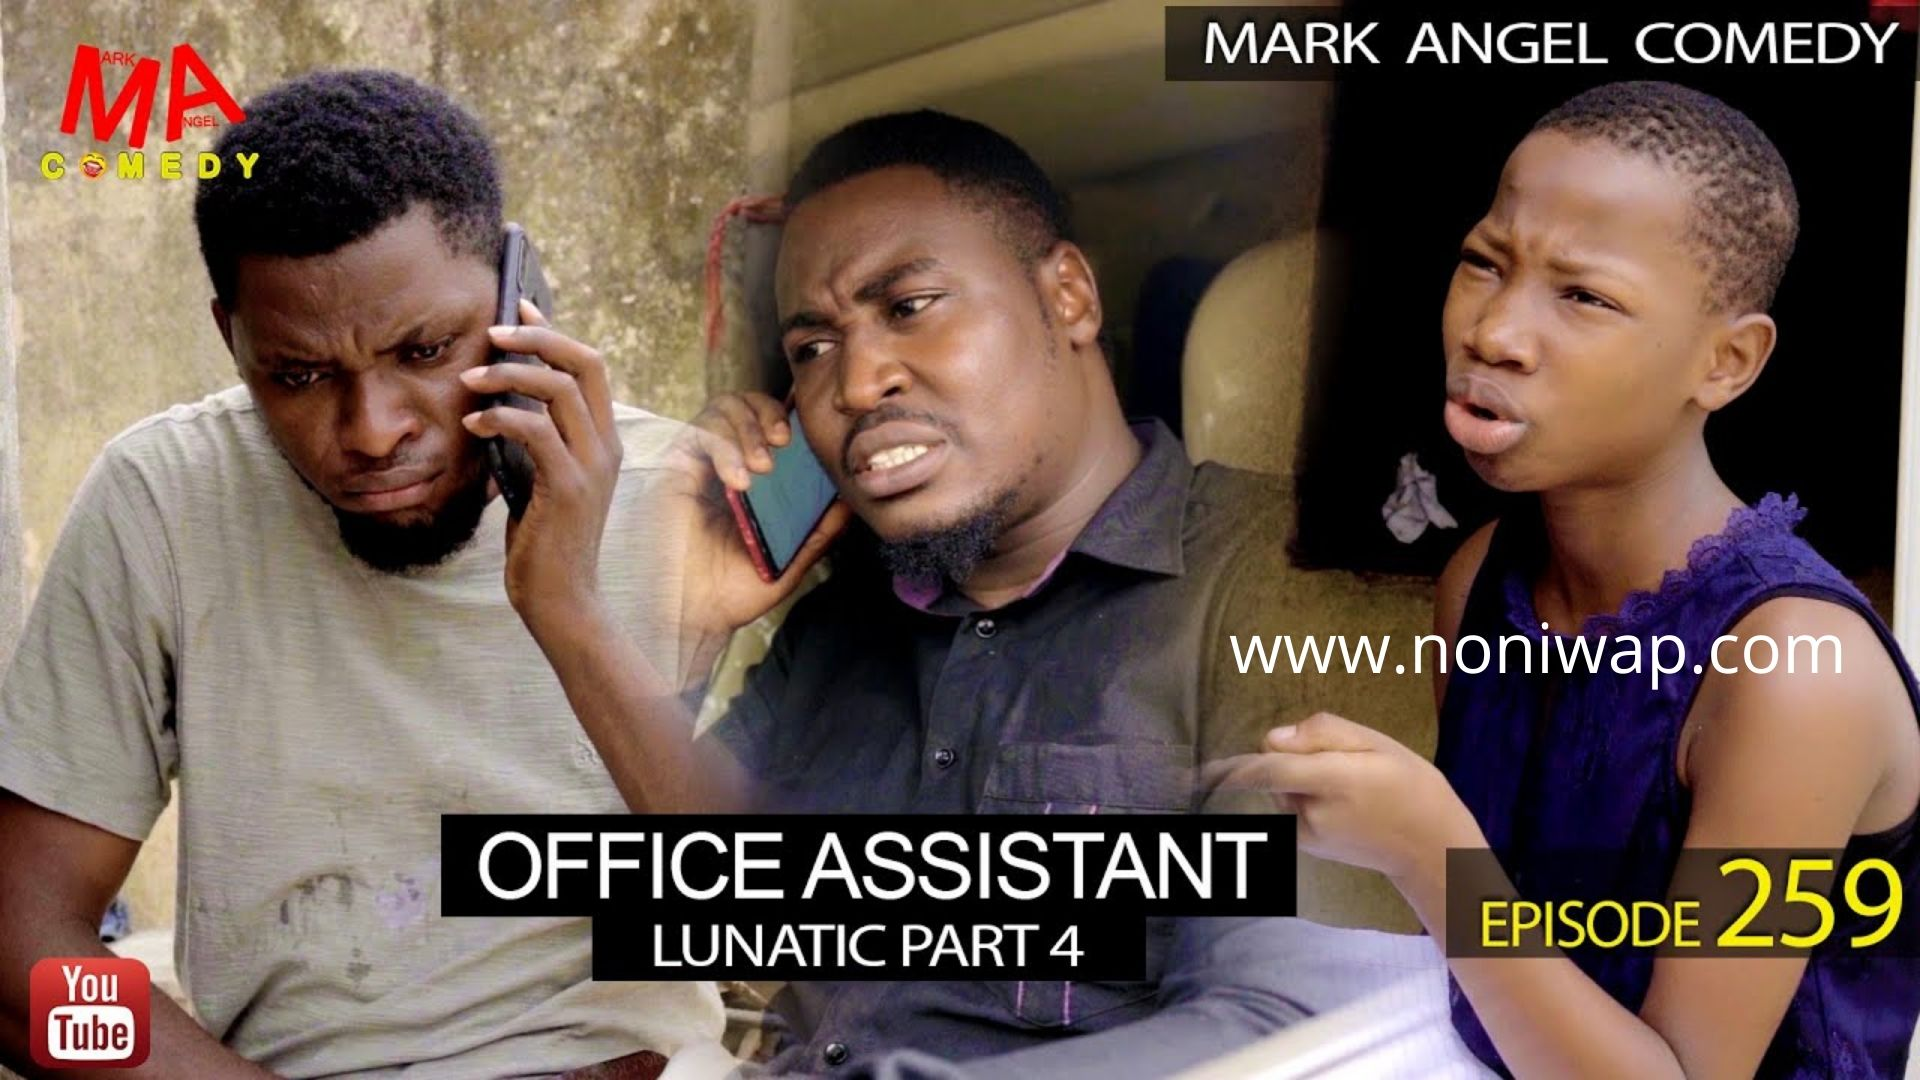 DOWNLOAD: OFFICE ASSISTANT (Mark Angel Comedy Episode 259)